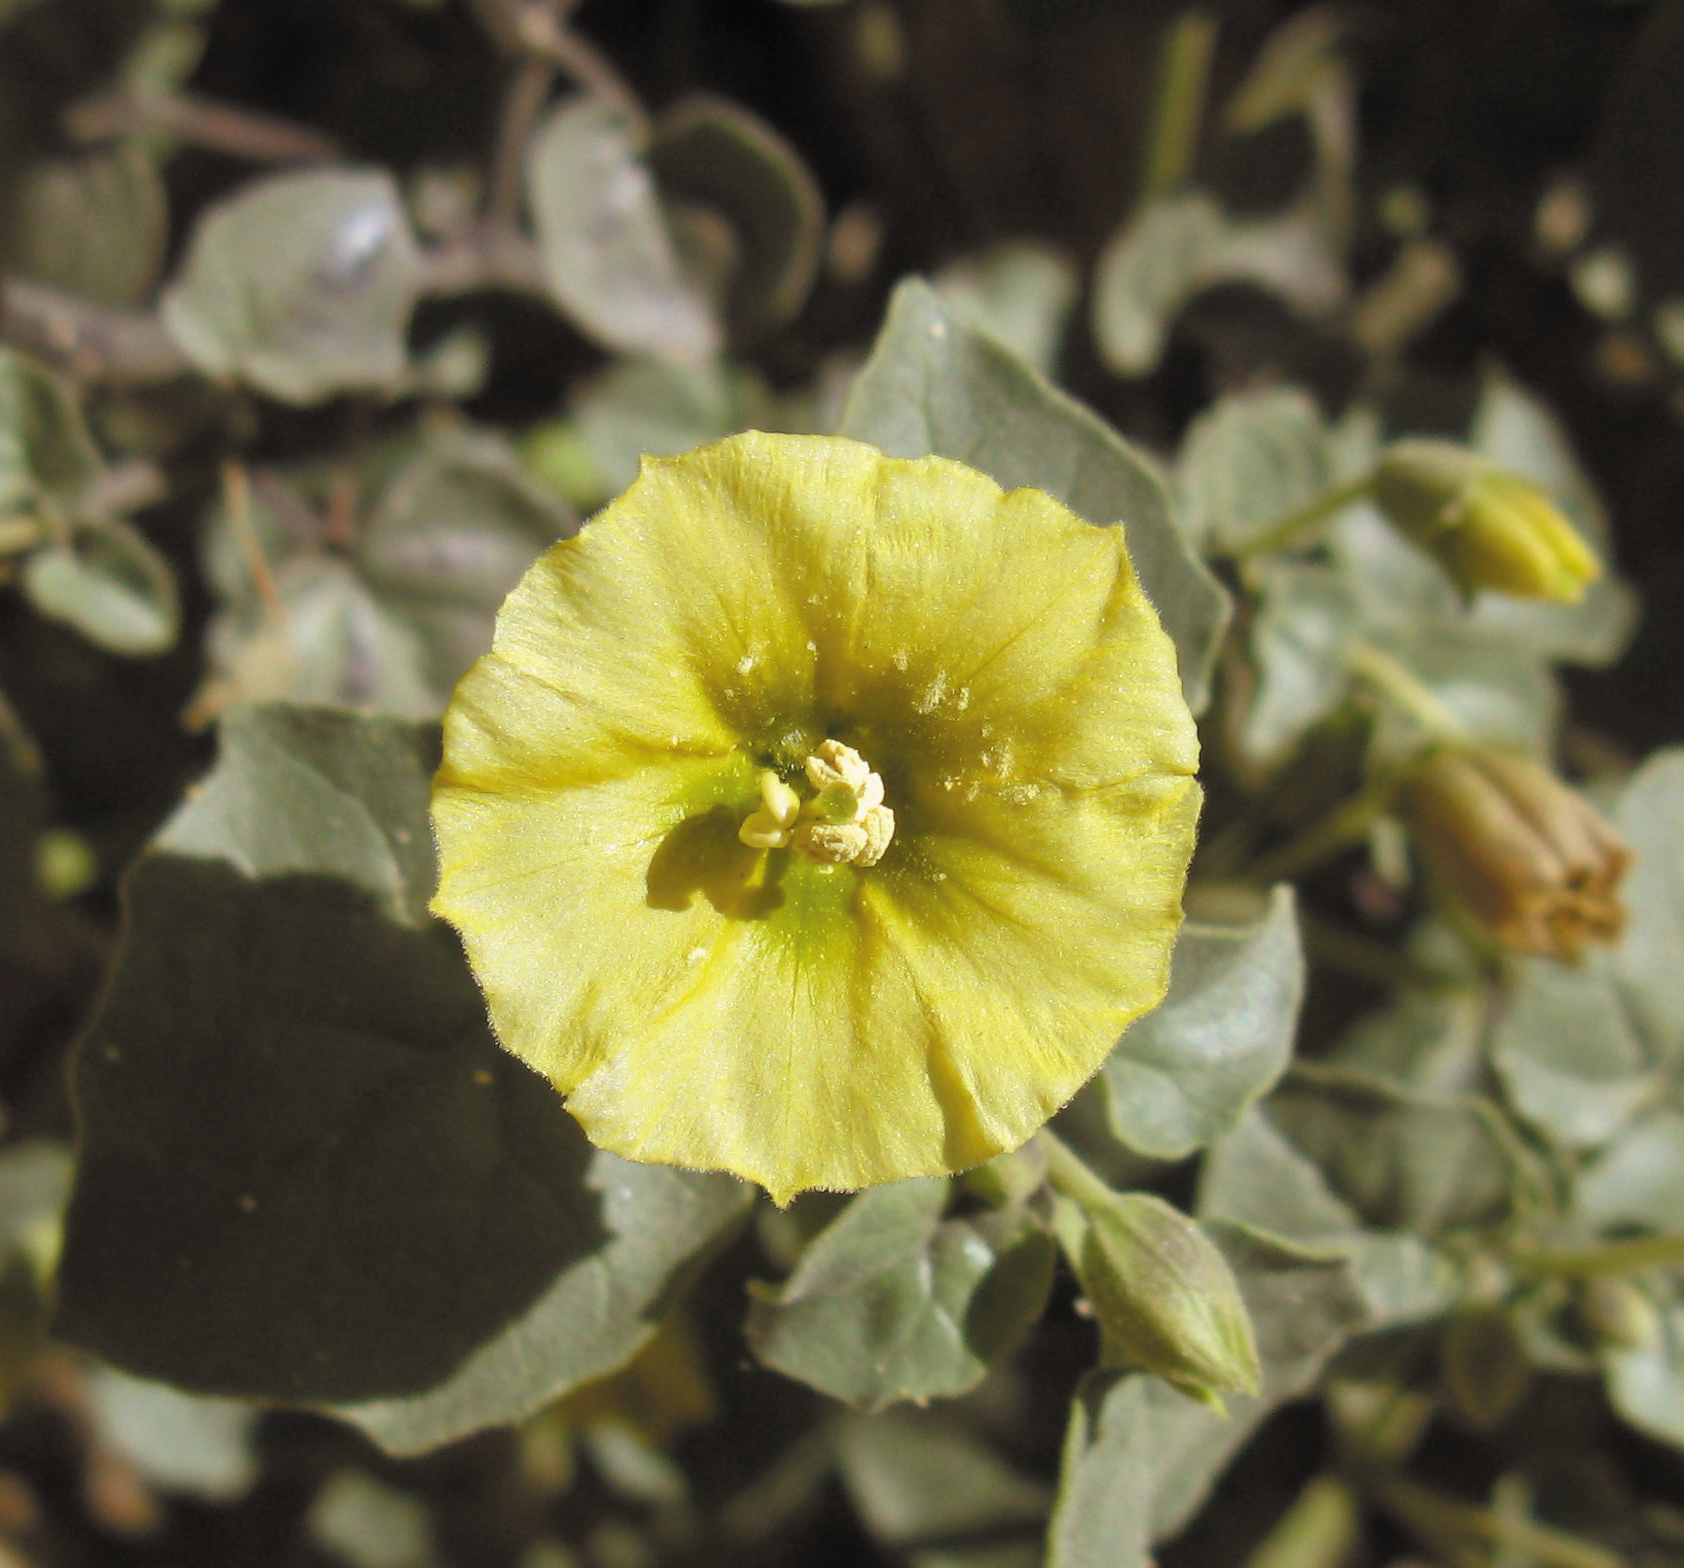 Color photo of a large, flat, yellow flower over broad green leaves.